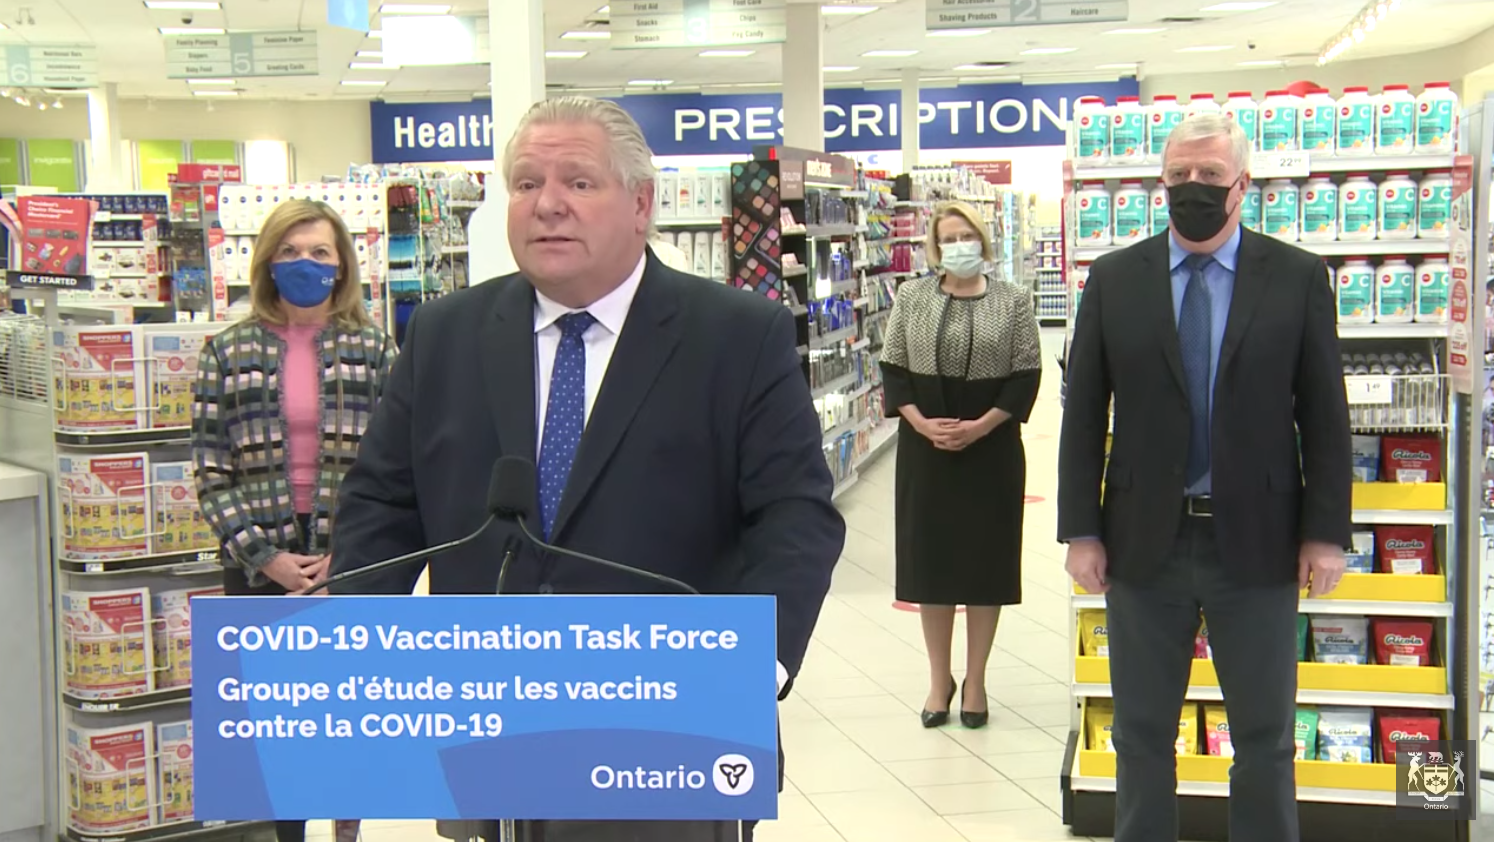 COVID-19 shots at Ontario pharmacies to expand to all those 60 and older